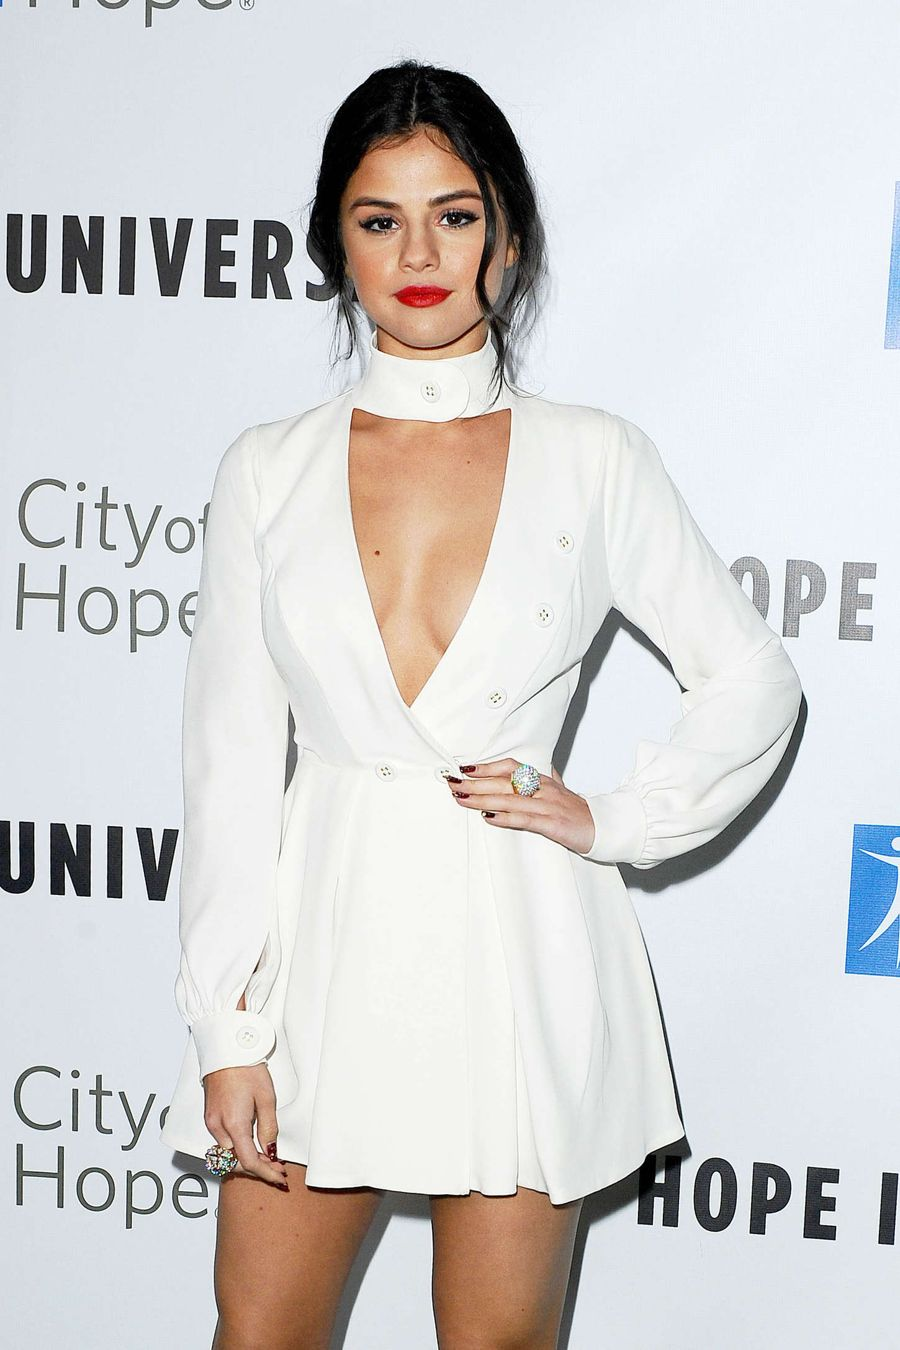 Selena Gomez - Spirit of Life Gala by the City of Hope